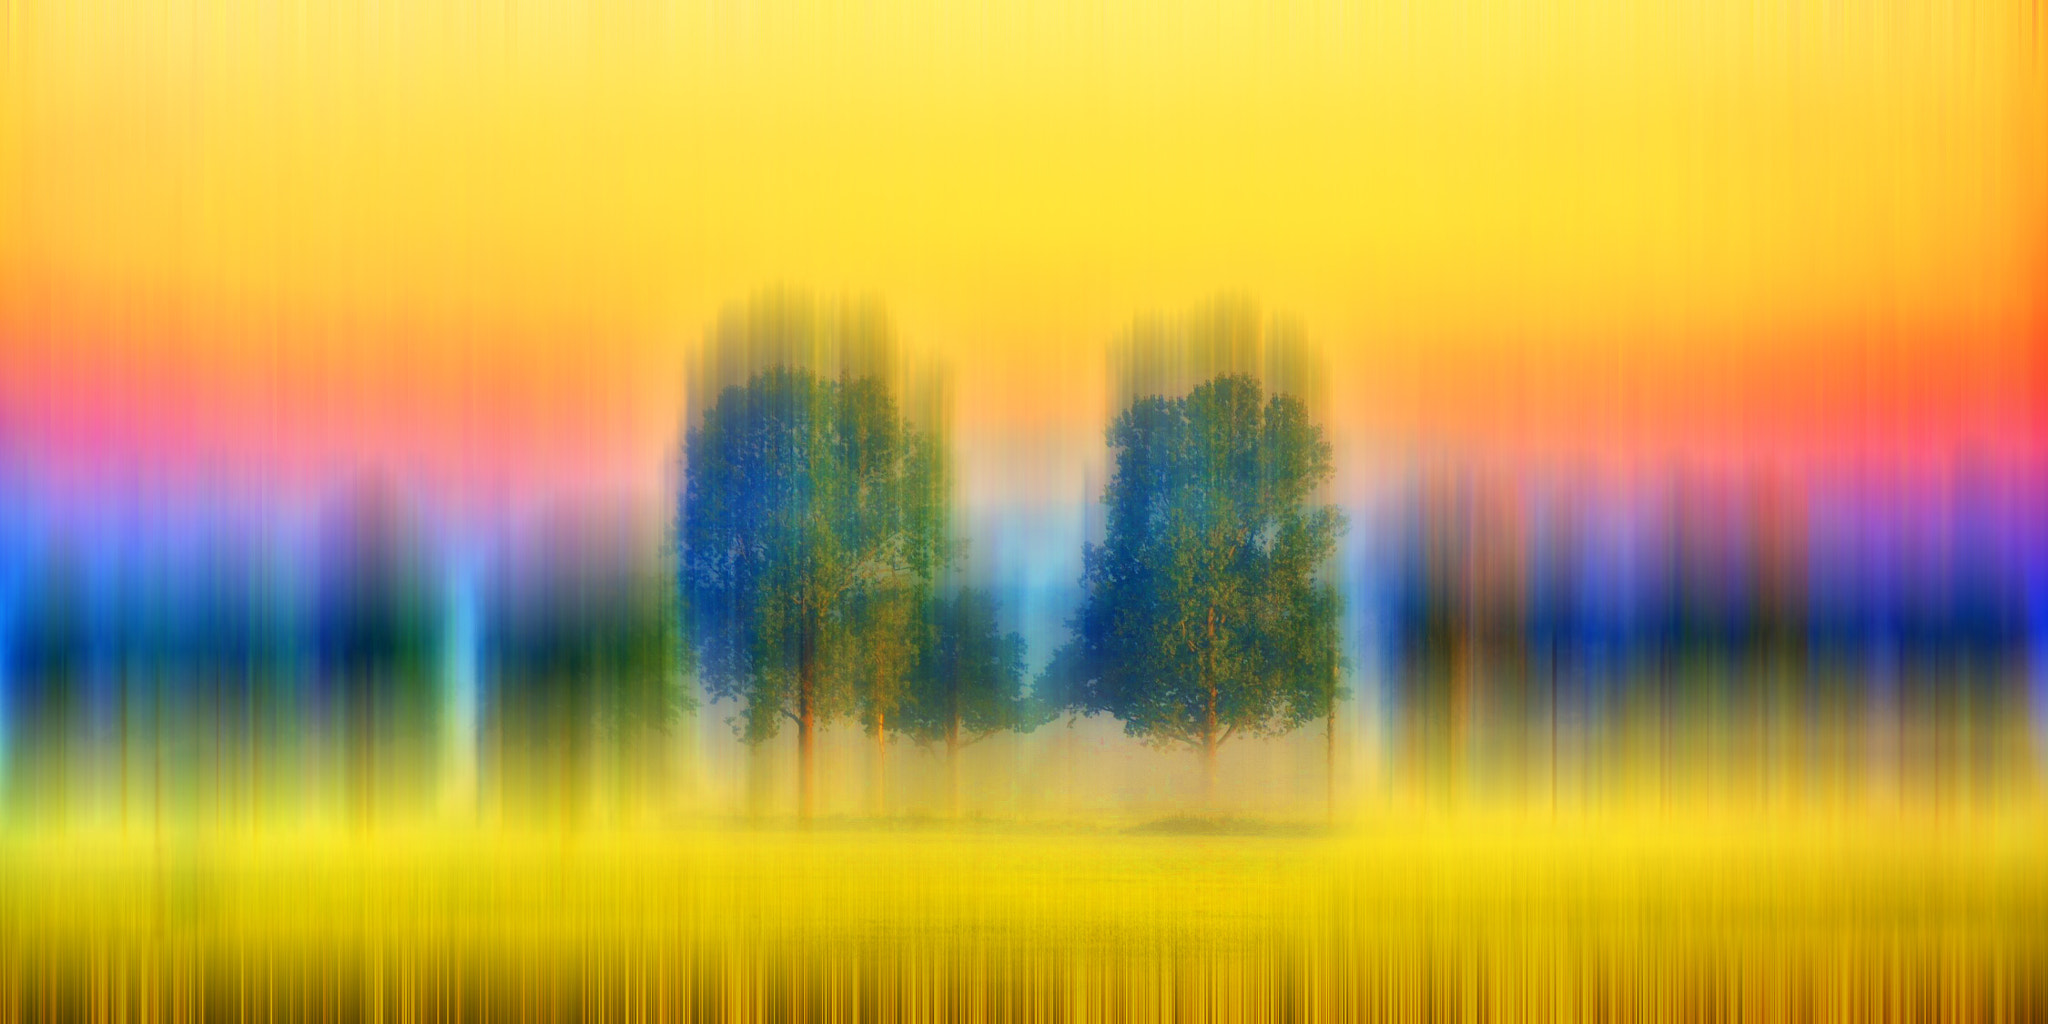 Photograph a line of trees by Thomas Christoph on 500px